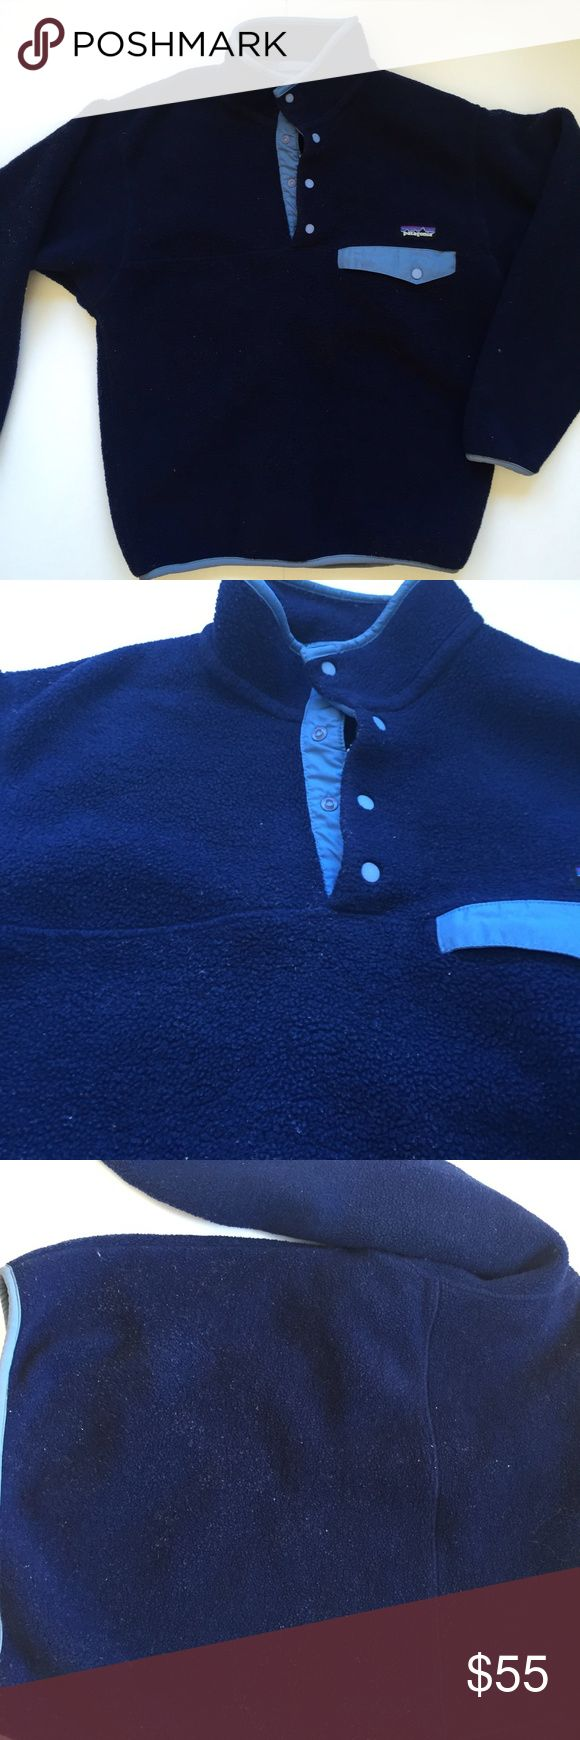 SYNCHILLA MENS PATAGONIA FLEECE! Small! Men's Patagonia SYNCHILLA Fleece! Size Small! Signs of wear but good condition! Patagonia Jackets & Coats